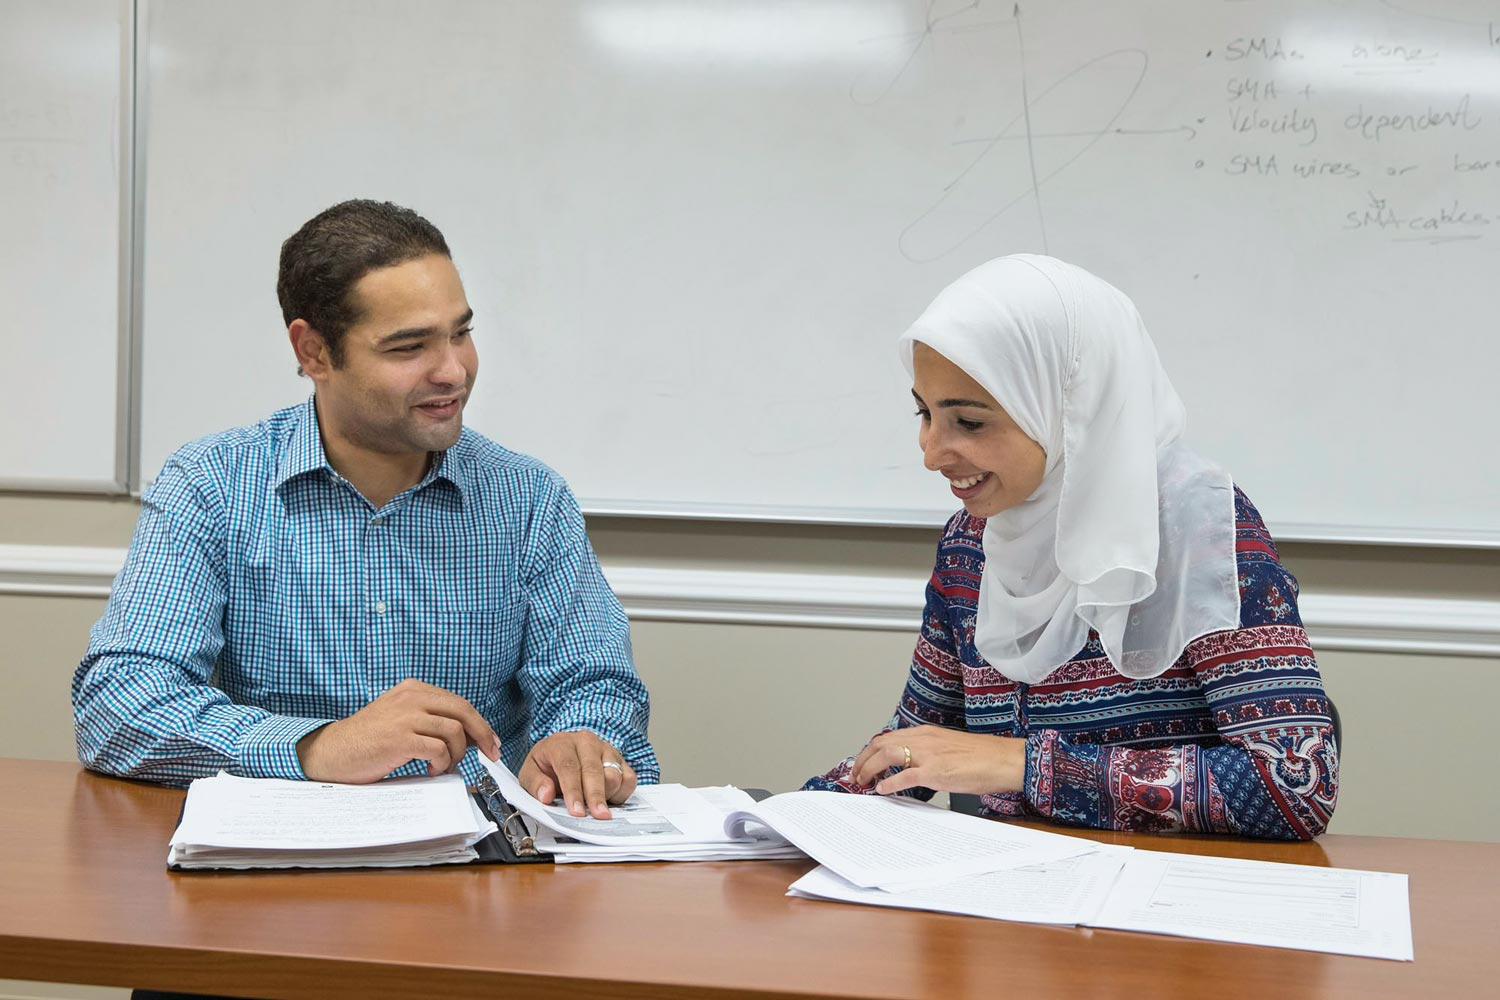 Mohamed Morsy and Bakinam Tarik Essawy compare hydrology reports after defending their dissertations.